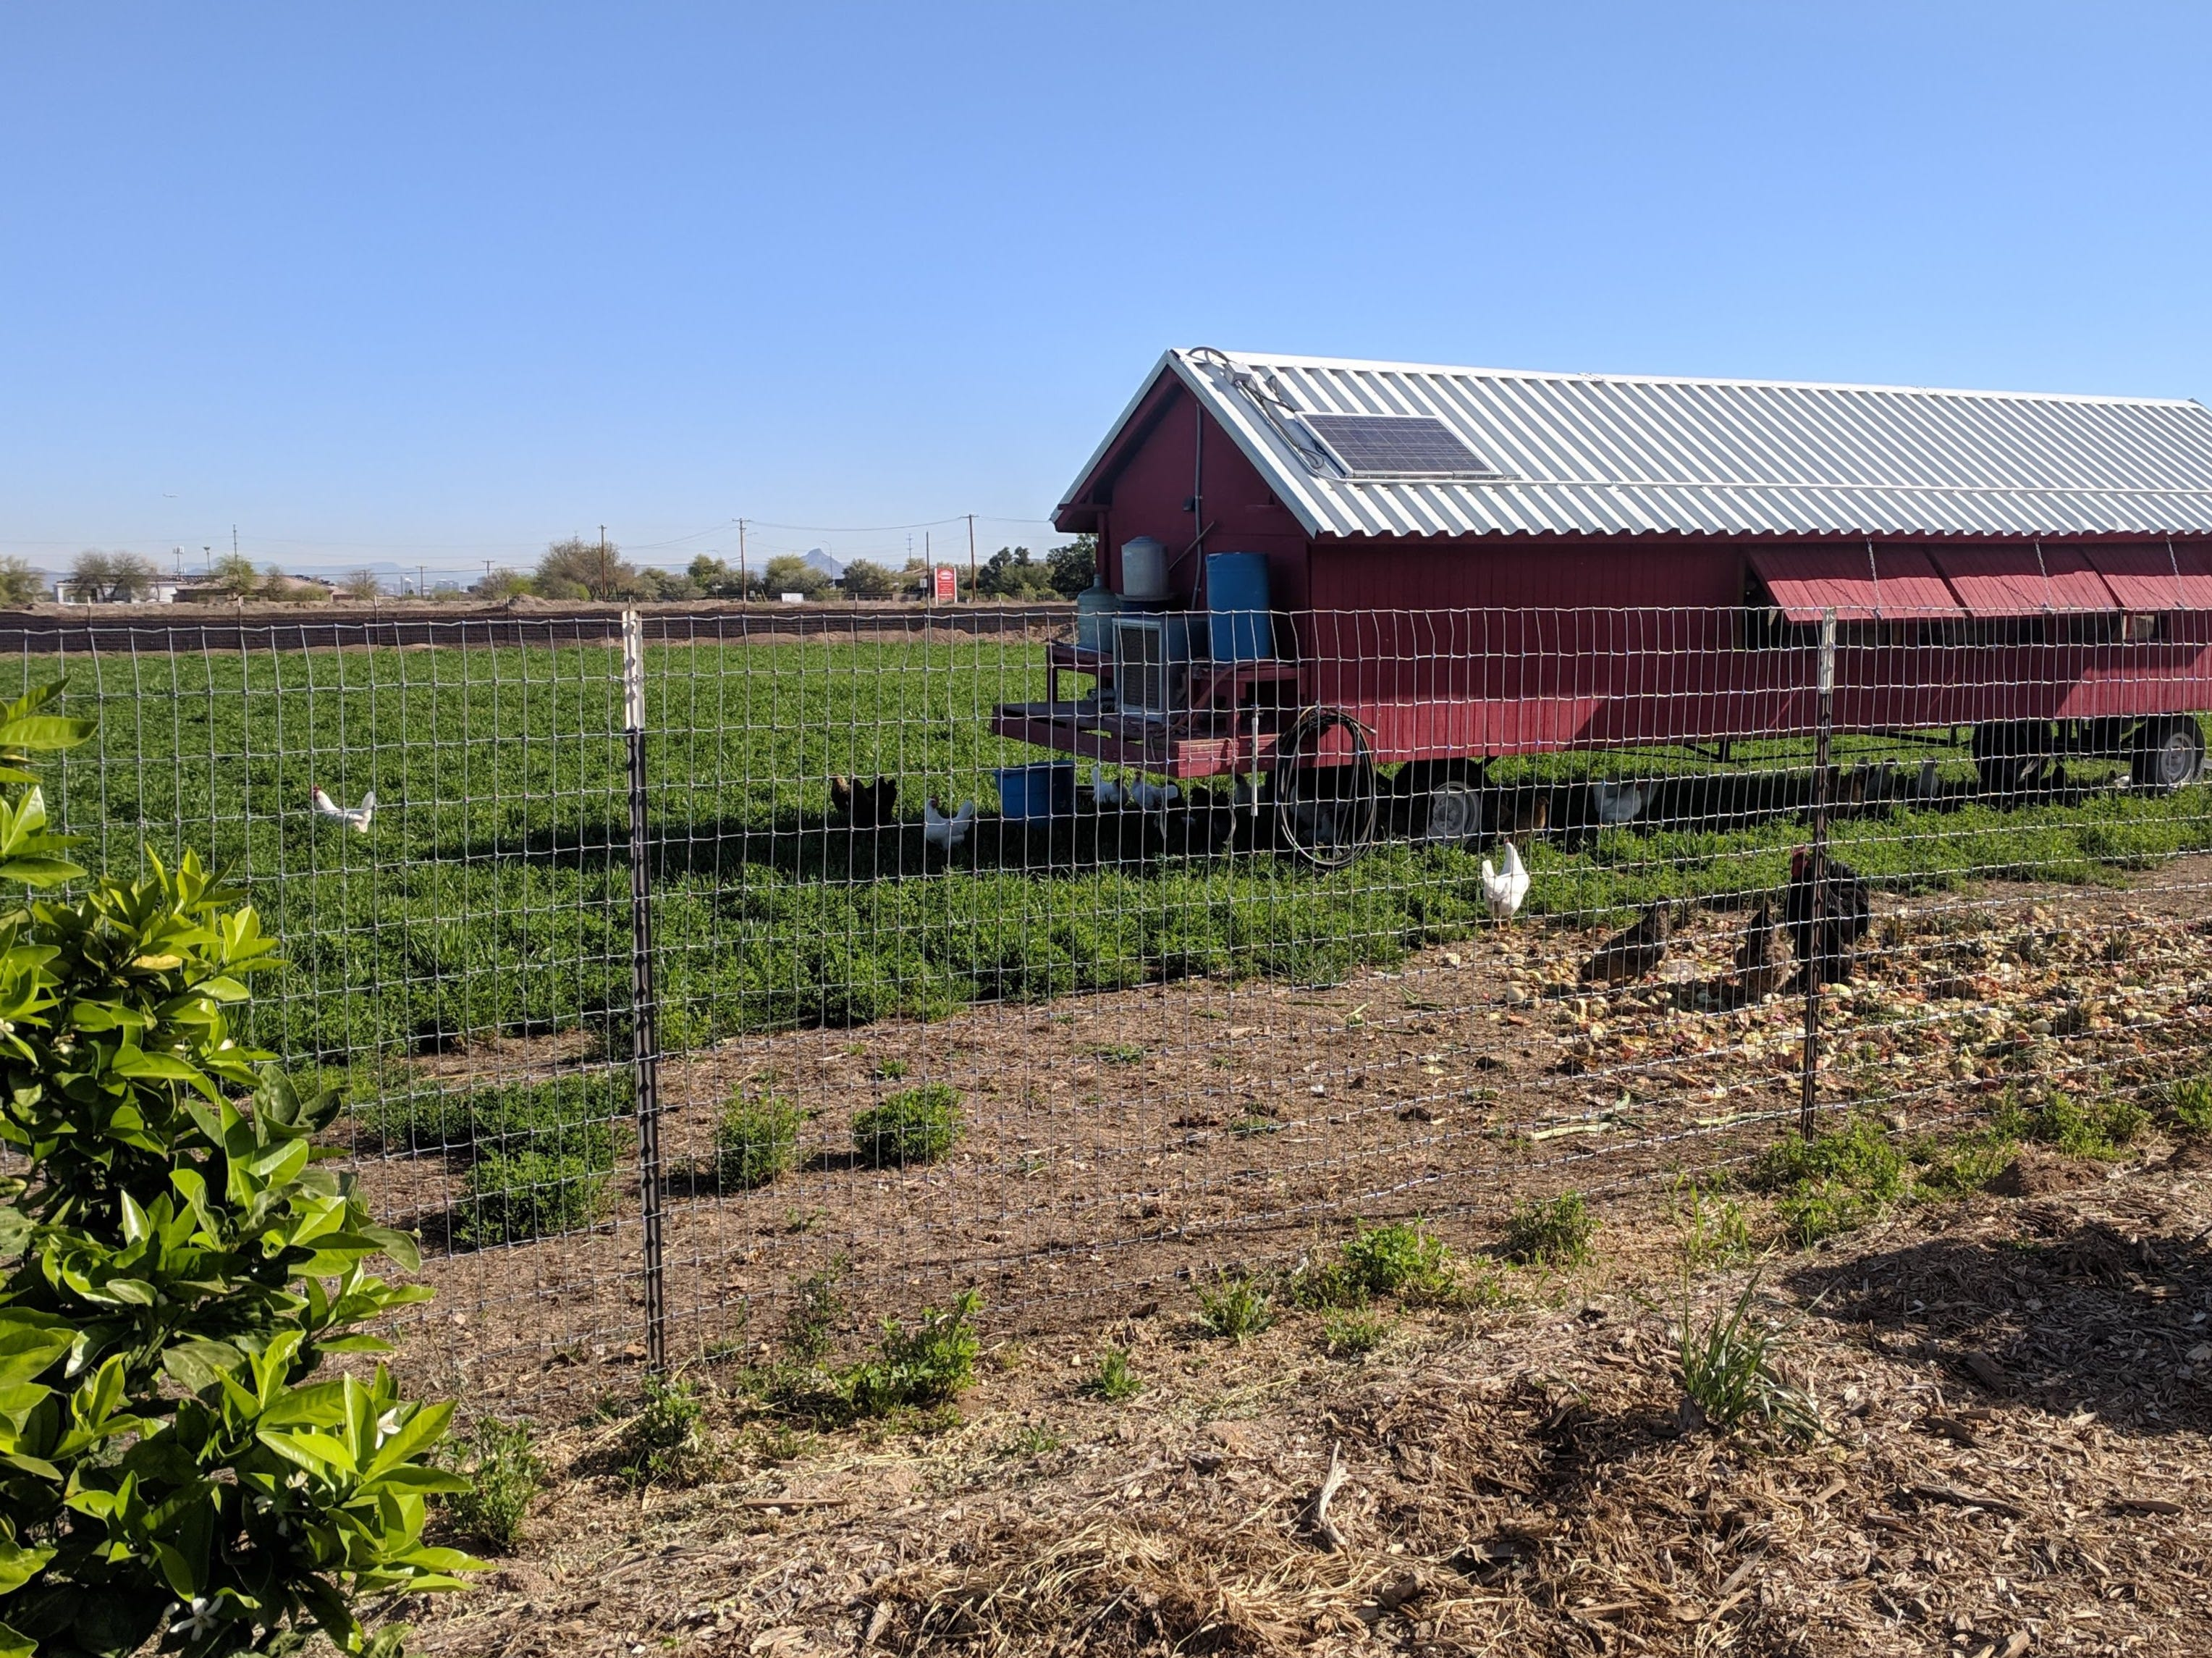 Chickens greet visitors who drive down the lengthy driveway at the Arizona Worm Farm.